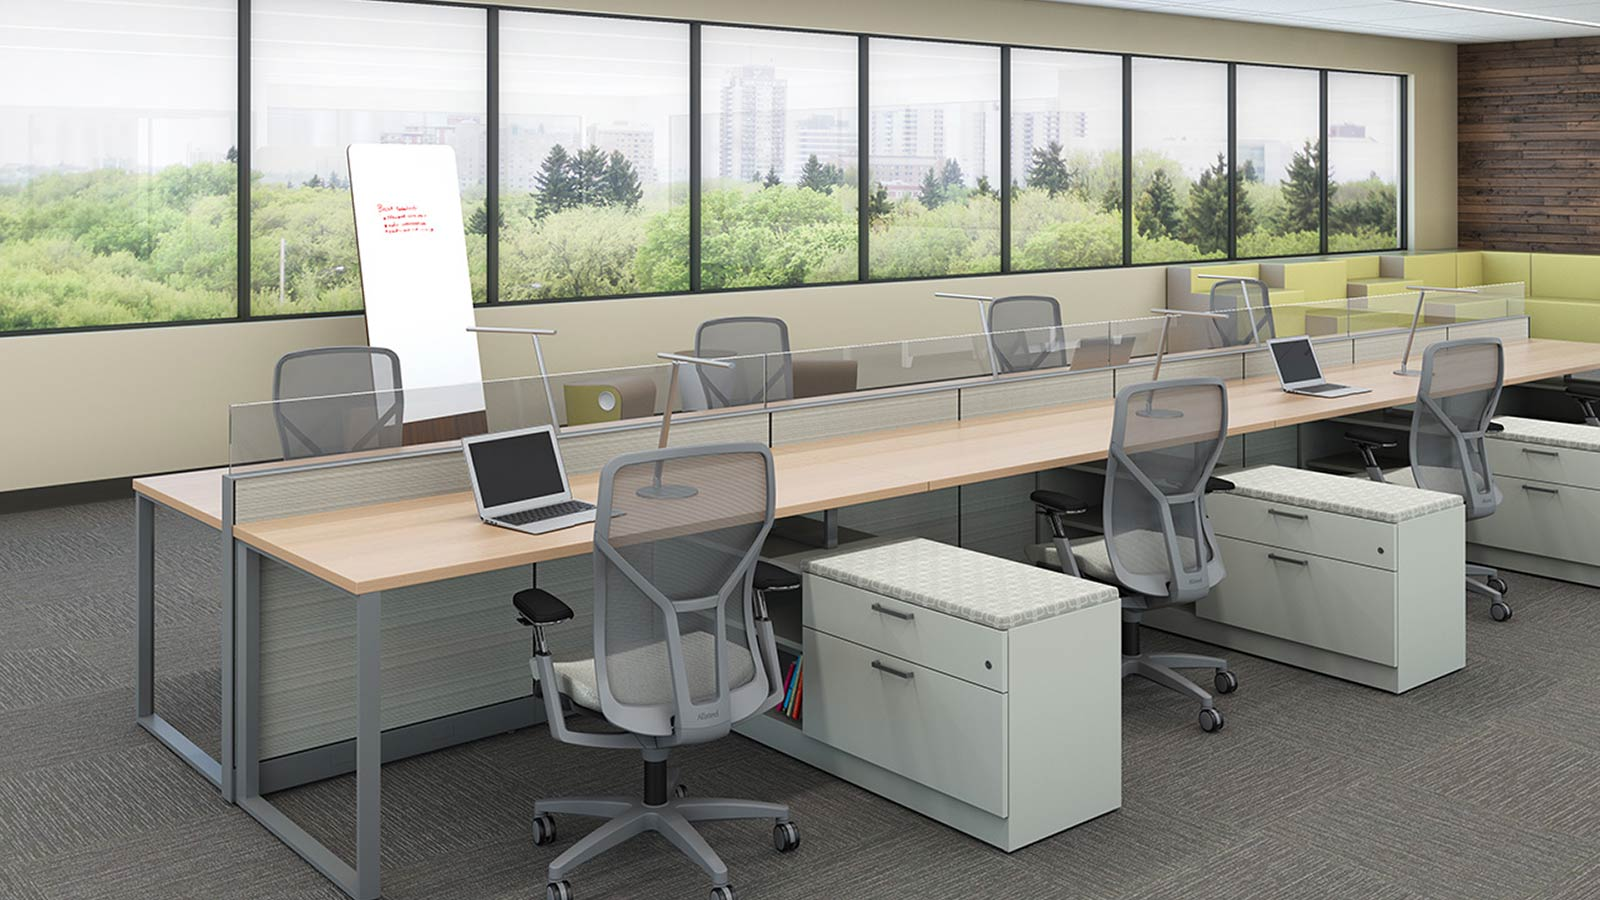 Open office space with divided work stations